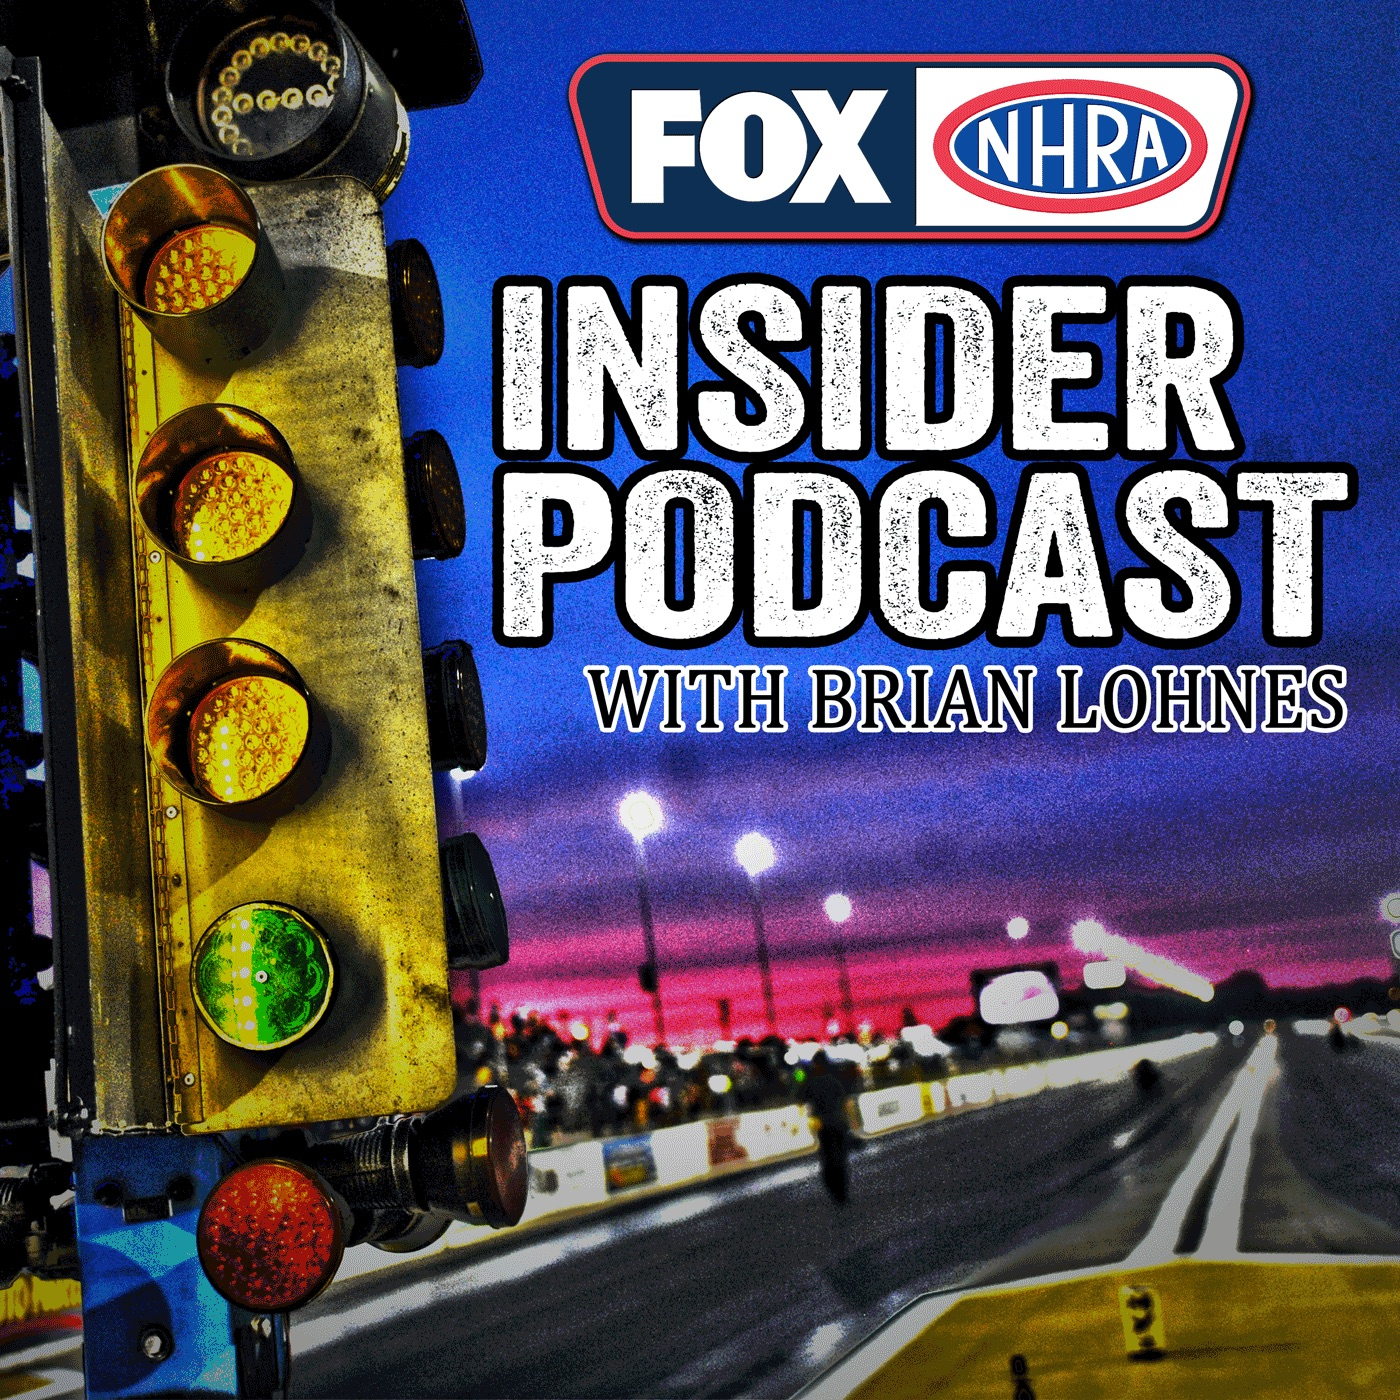 NHRA Insider Podcast: Erica Enders and Scott Palmer Talk Fire, Risks, and The Challenges of The Western Swing